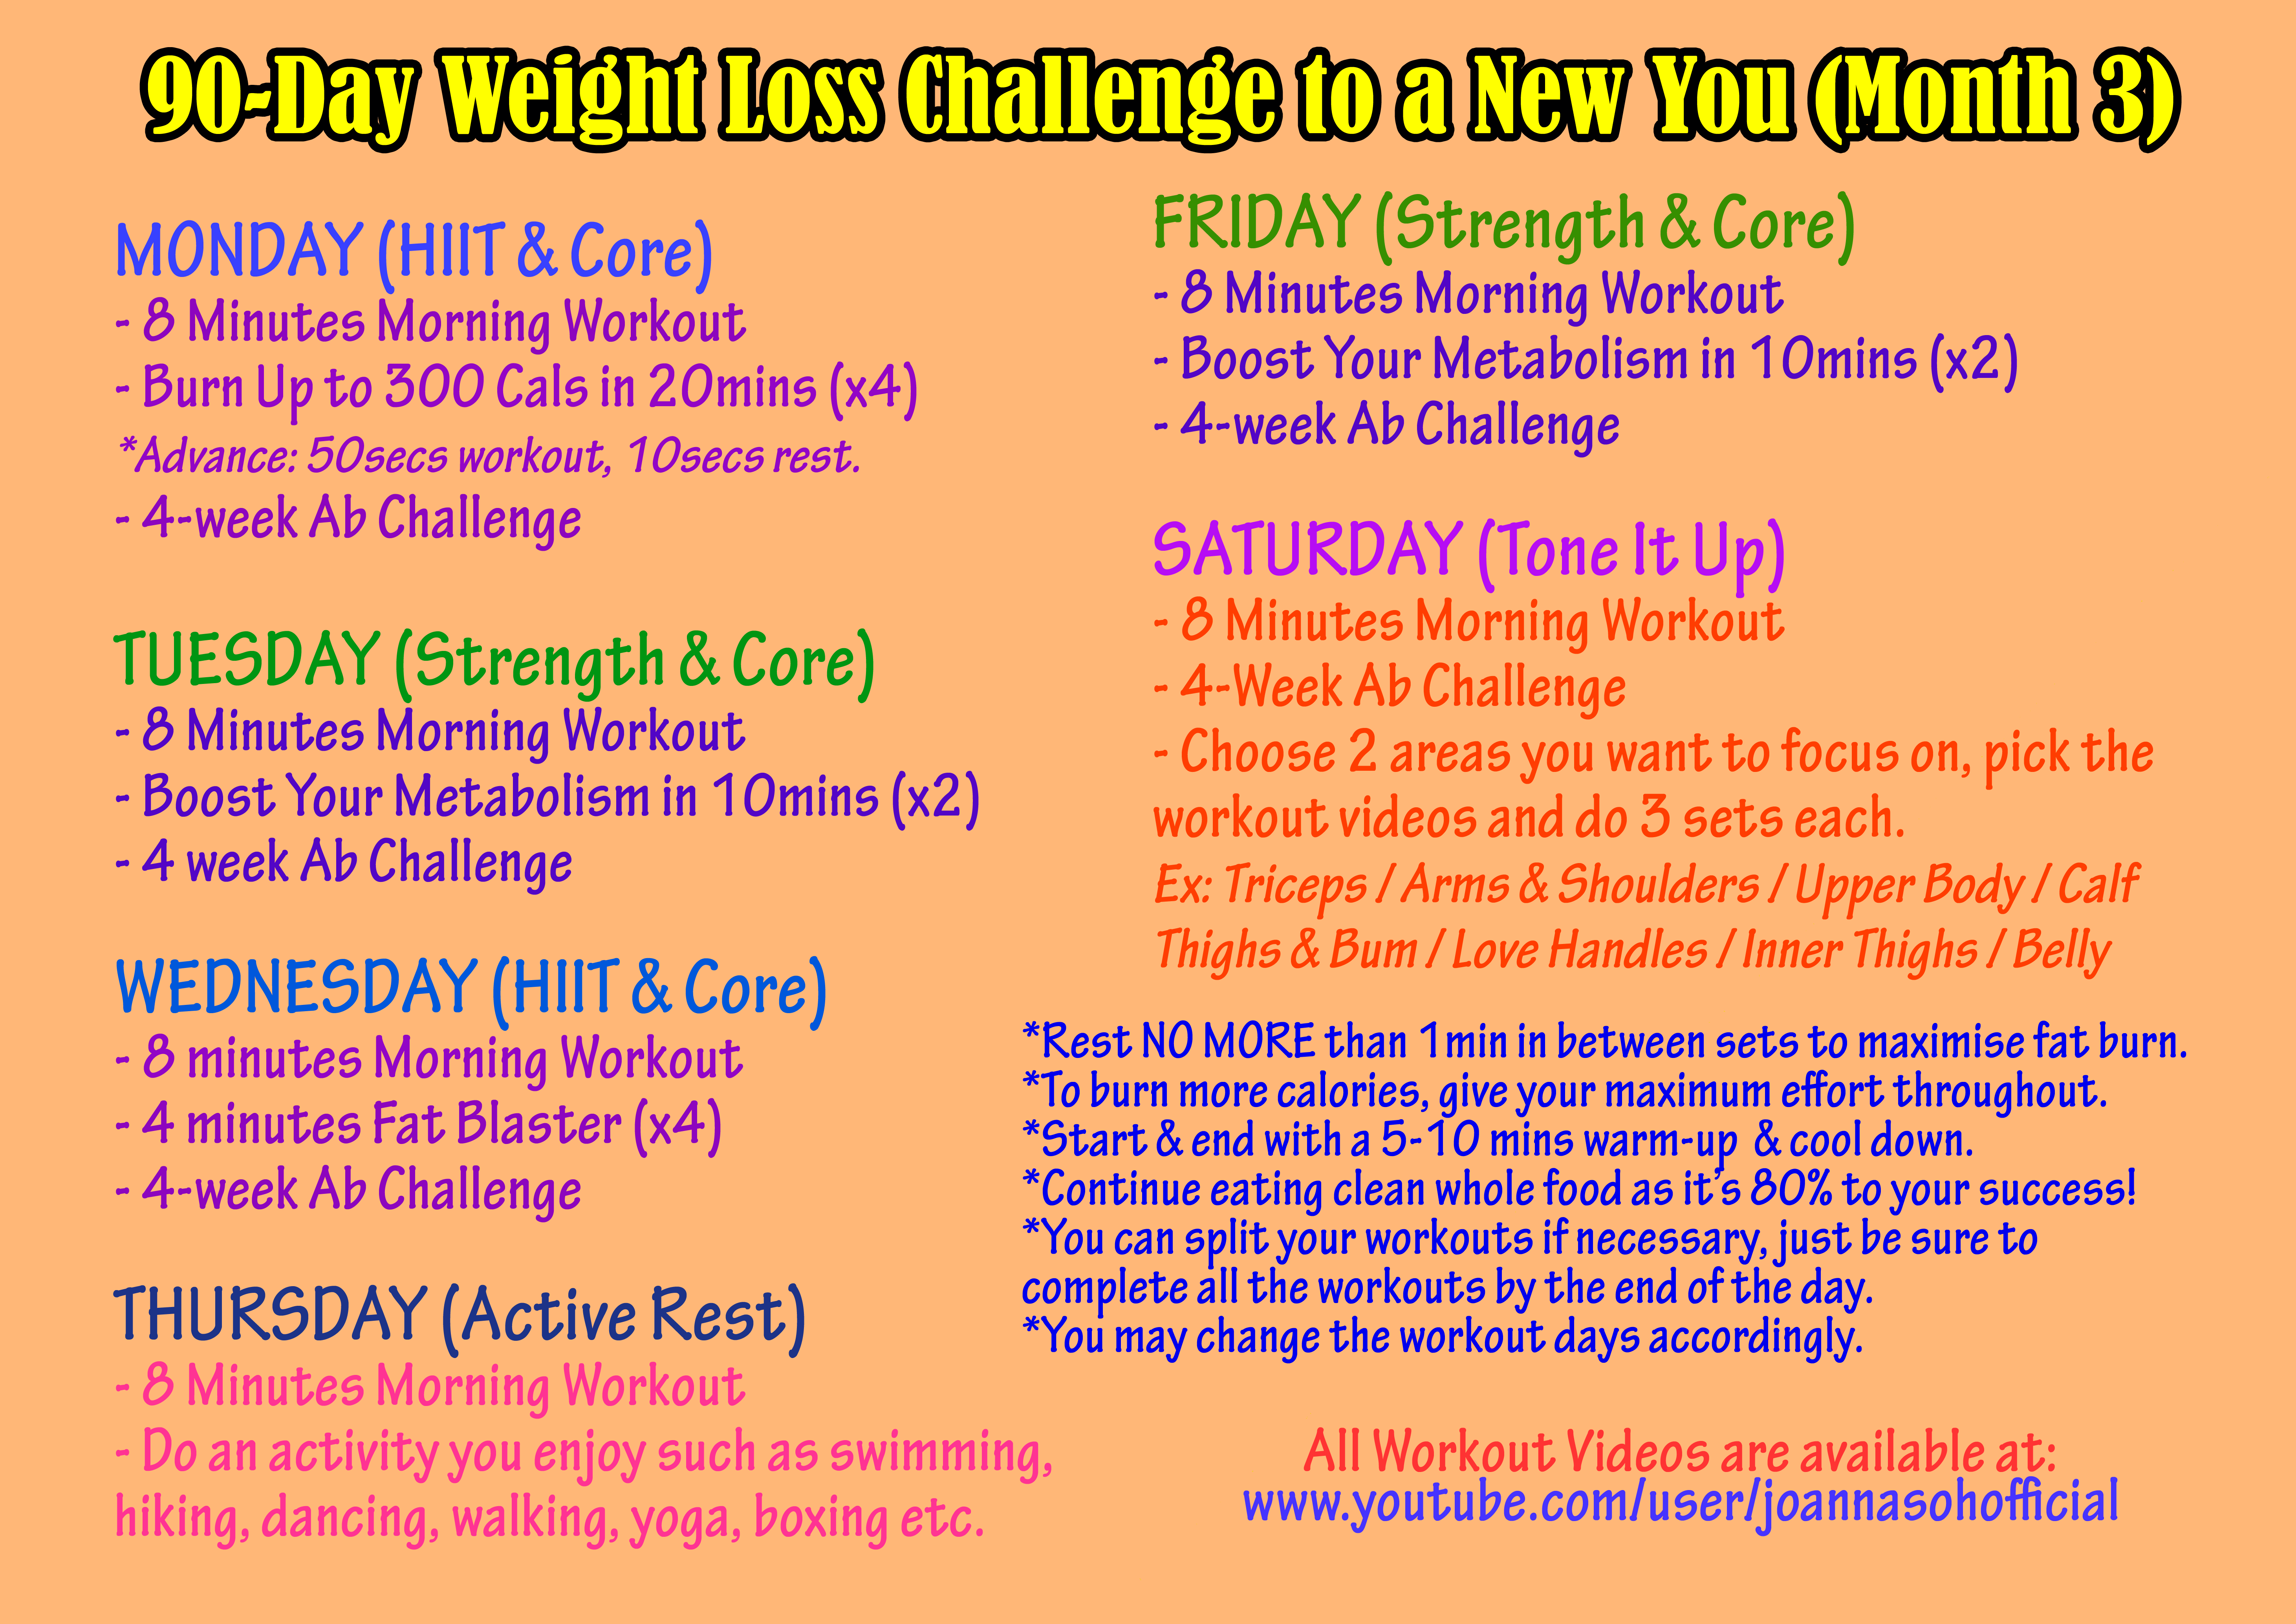 Full Workout Plan For Women 90 Day Weight Loss Challenge To A New ...